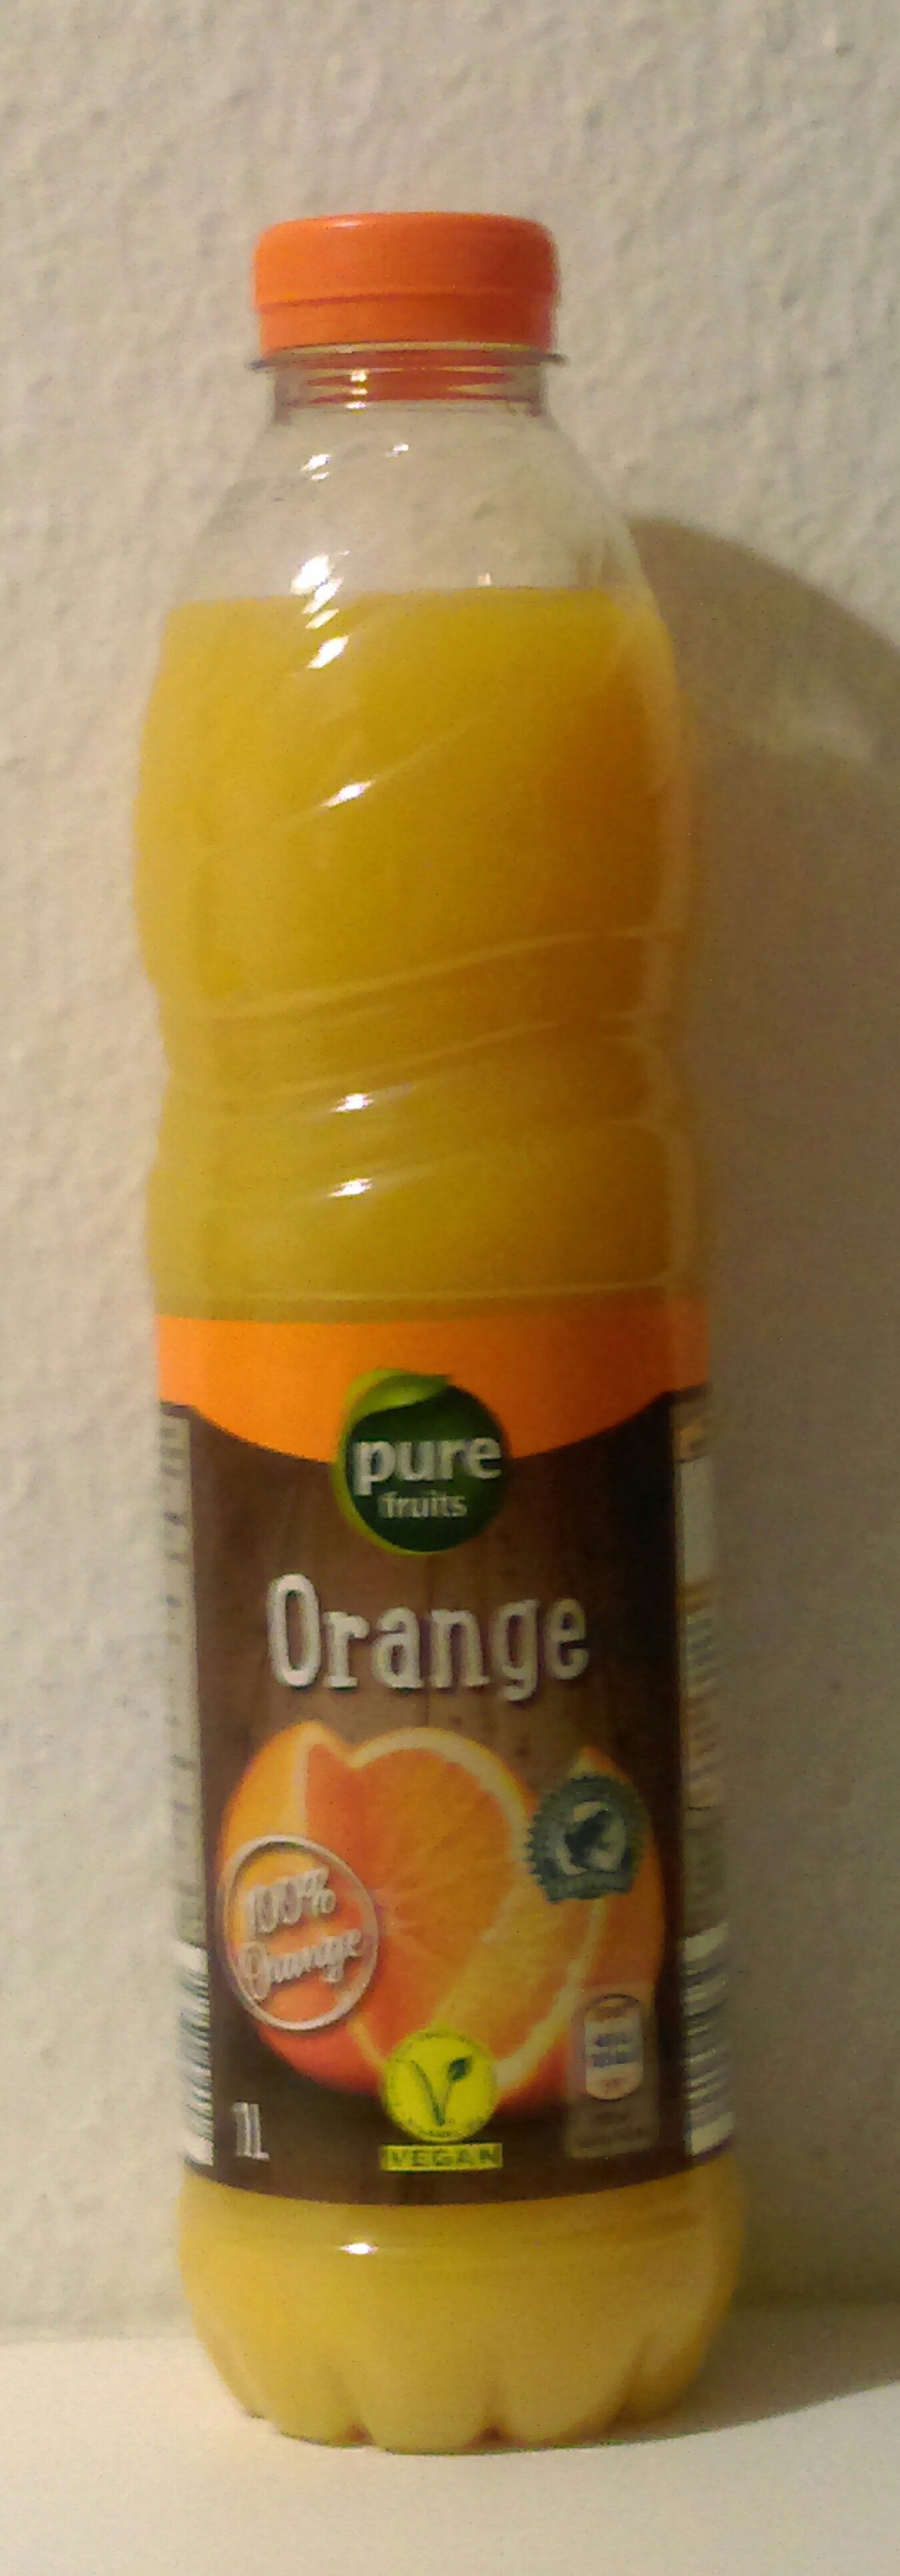 Orangensaft Pure Fruits Hofer - Product - de